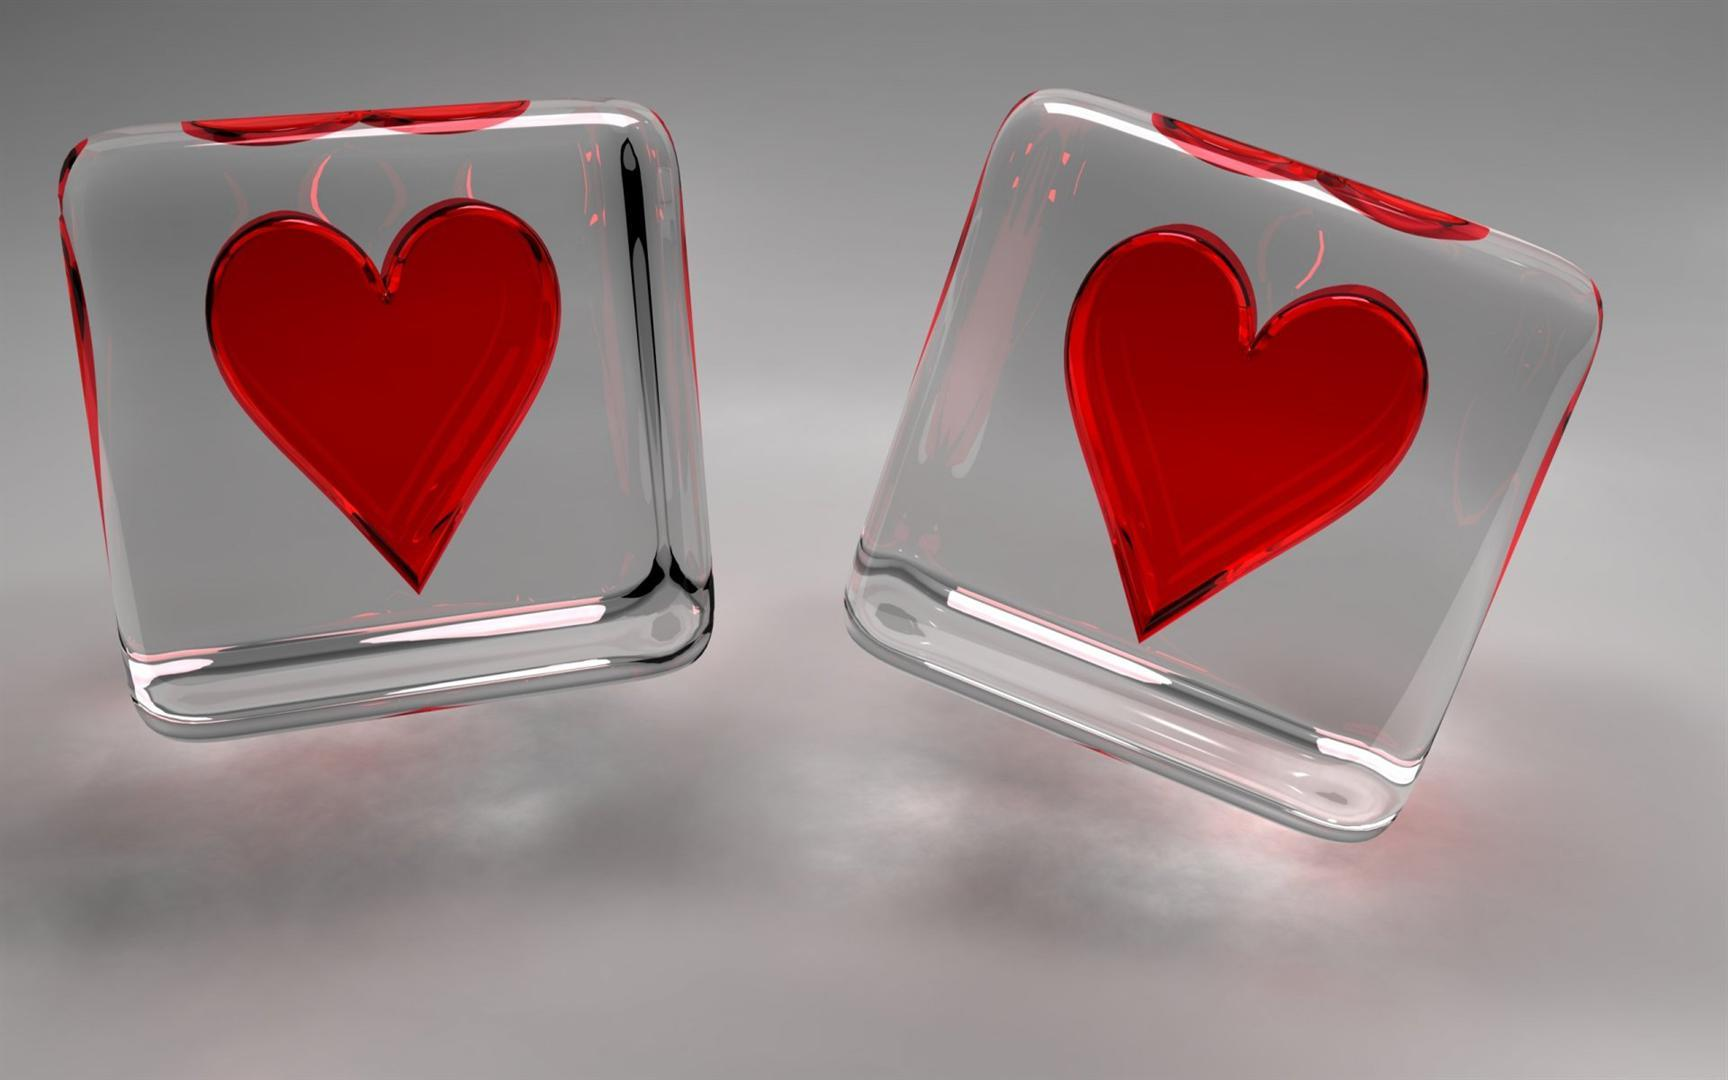 Wallpaper I Love You 3d : 3d Love Wallpapers - Wallpaper cave